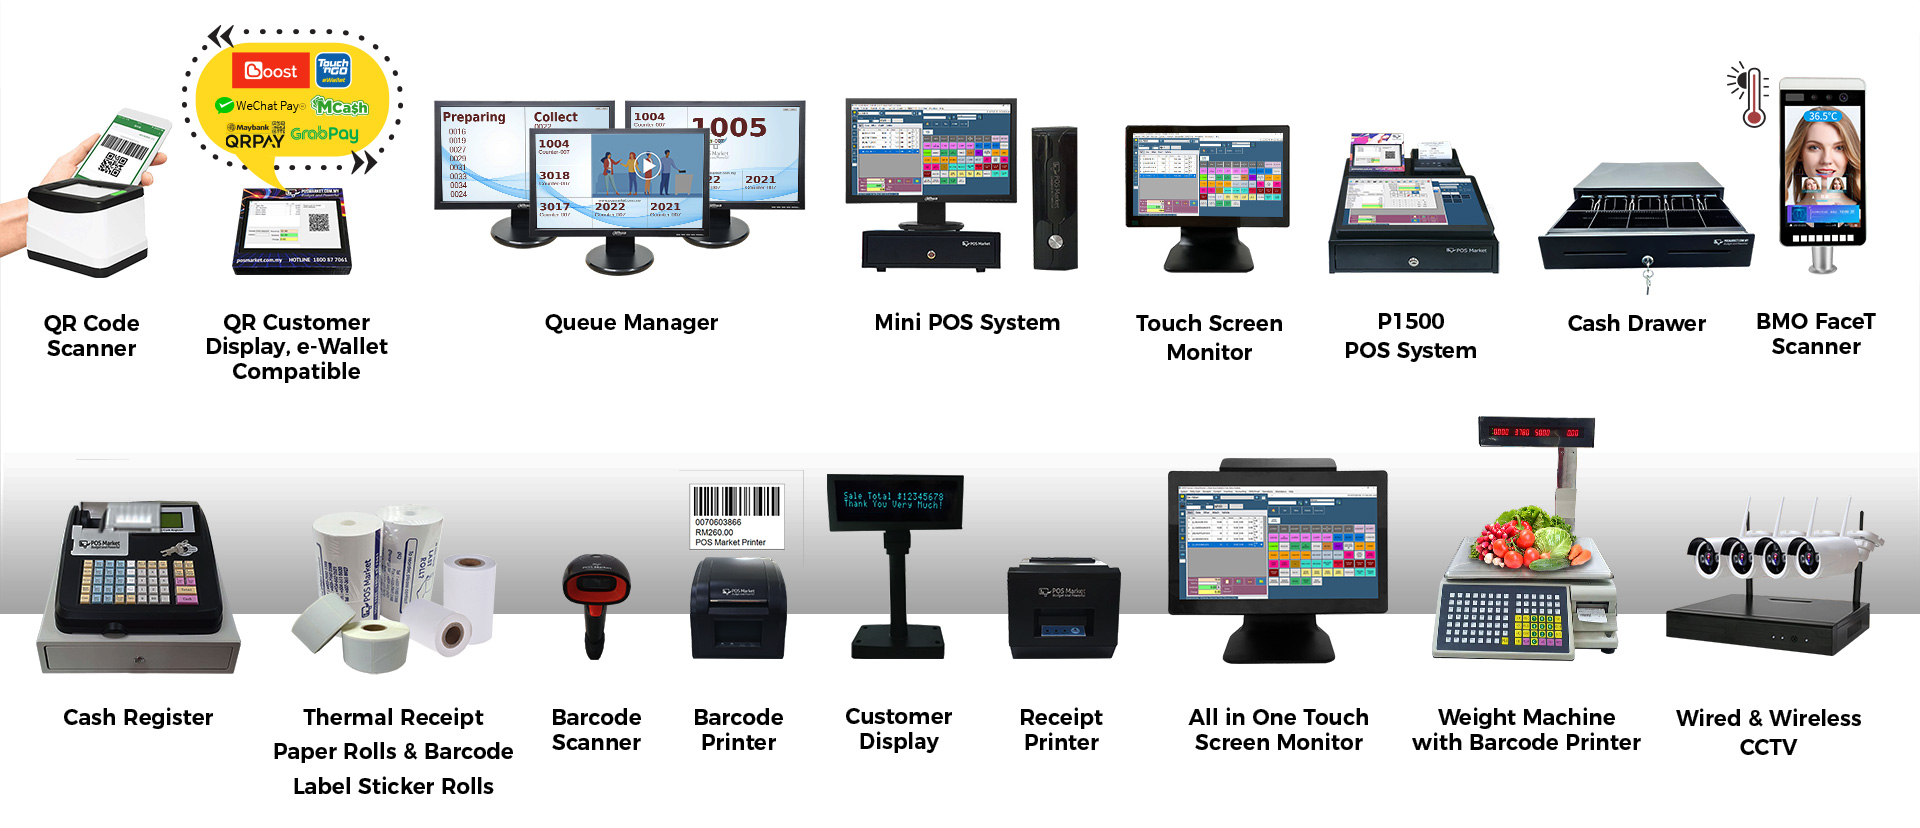 pos system hardwares catalogue banner qms ewallet